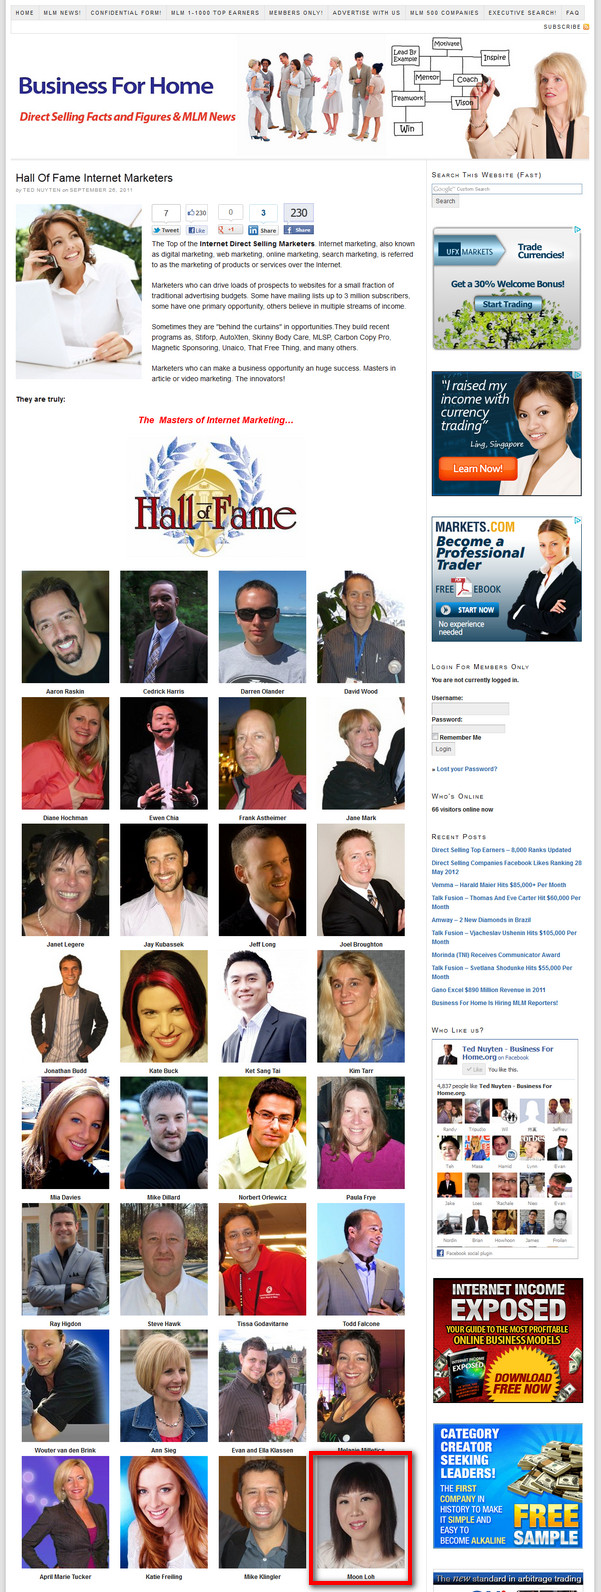 Hall Of Fame Internet Marketers